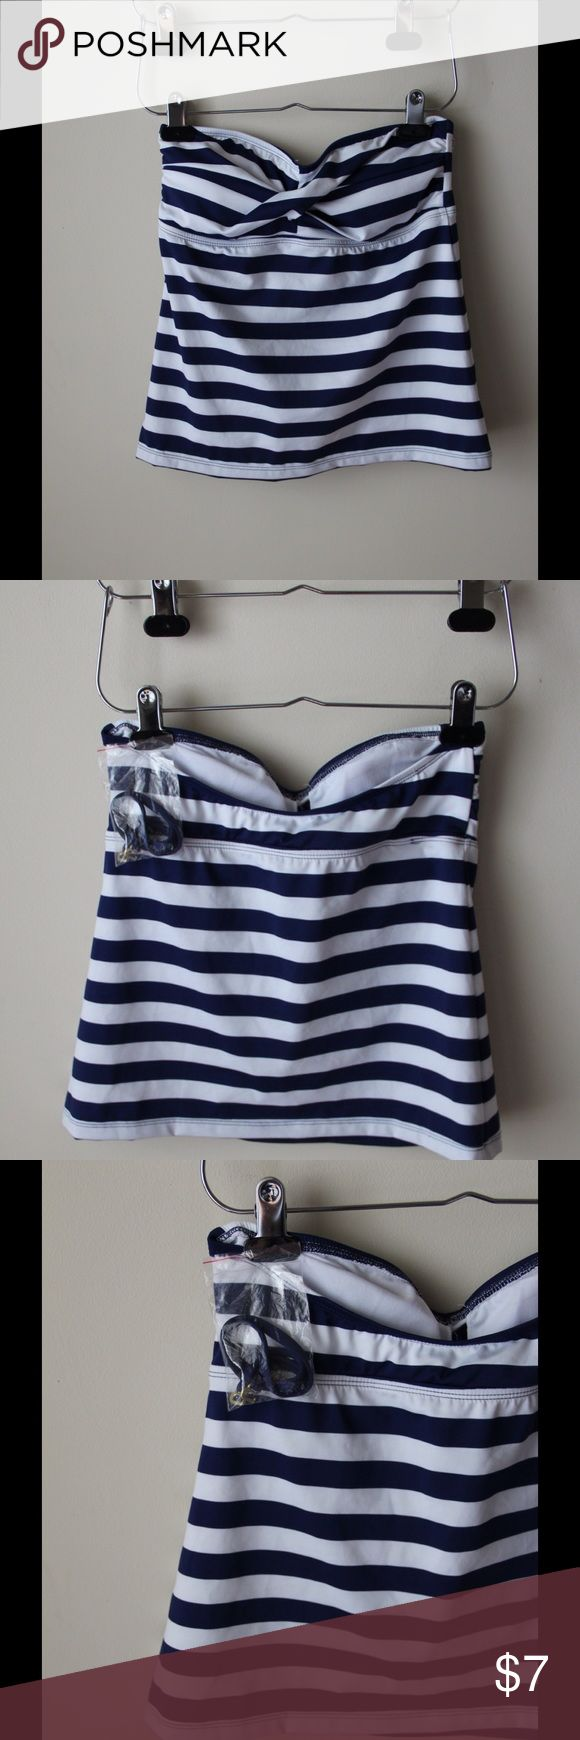 Navy blue and white tankini top Navy blue and white striped tankini top - removable padded cups - halter style detachable string - new! - size S Mossimo Supply Co. Swim Bikinis